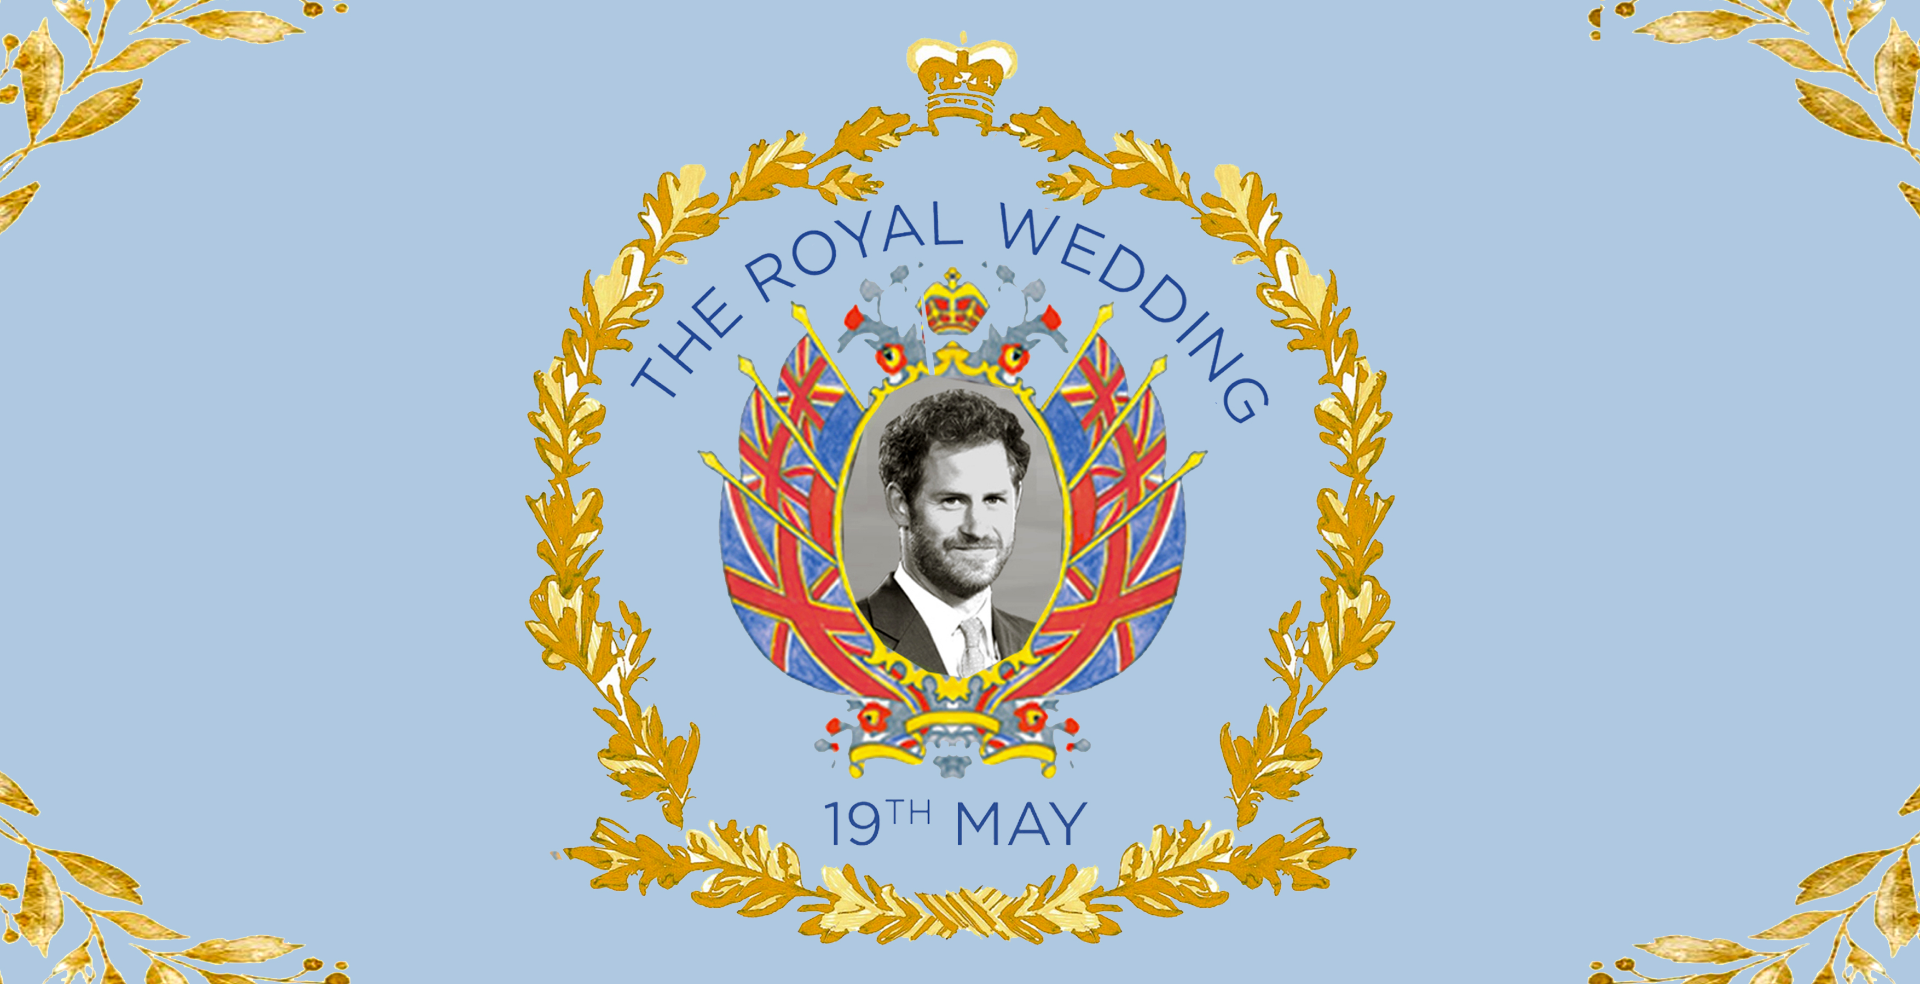 The Royal Wedding Party